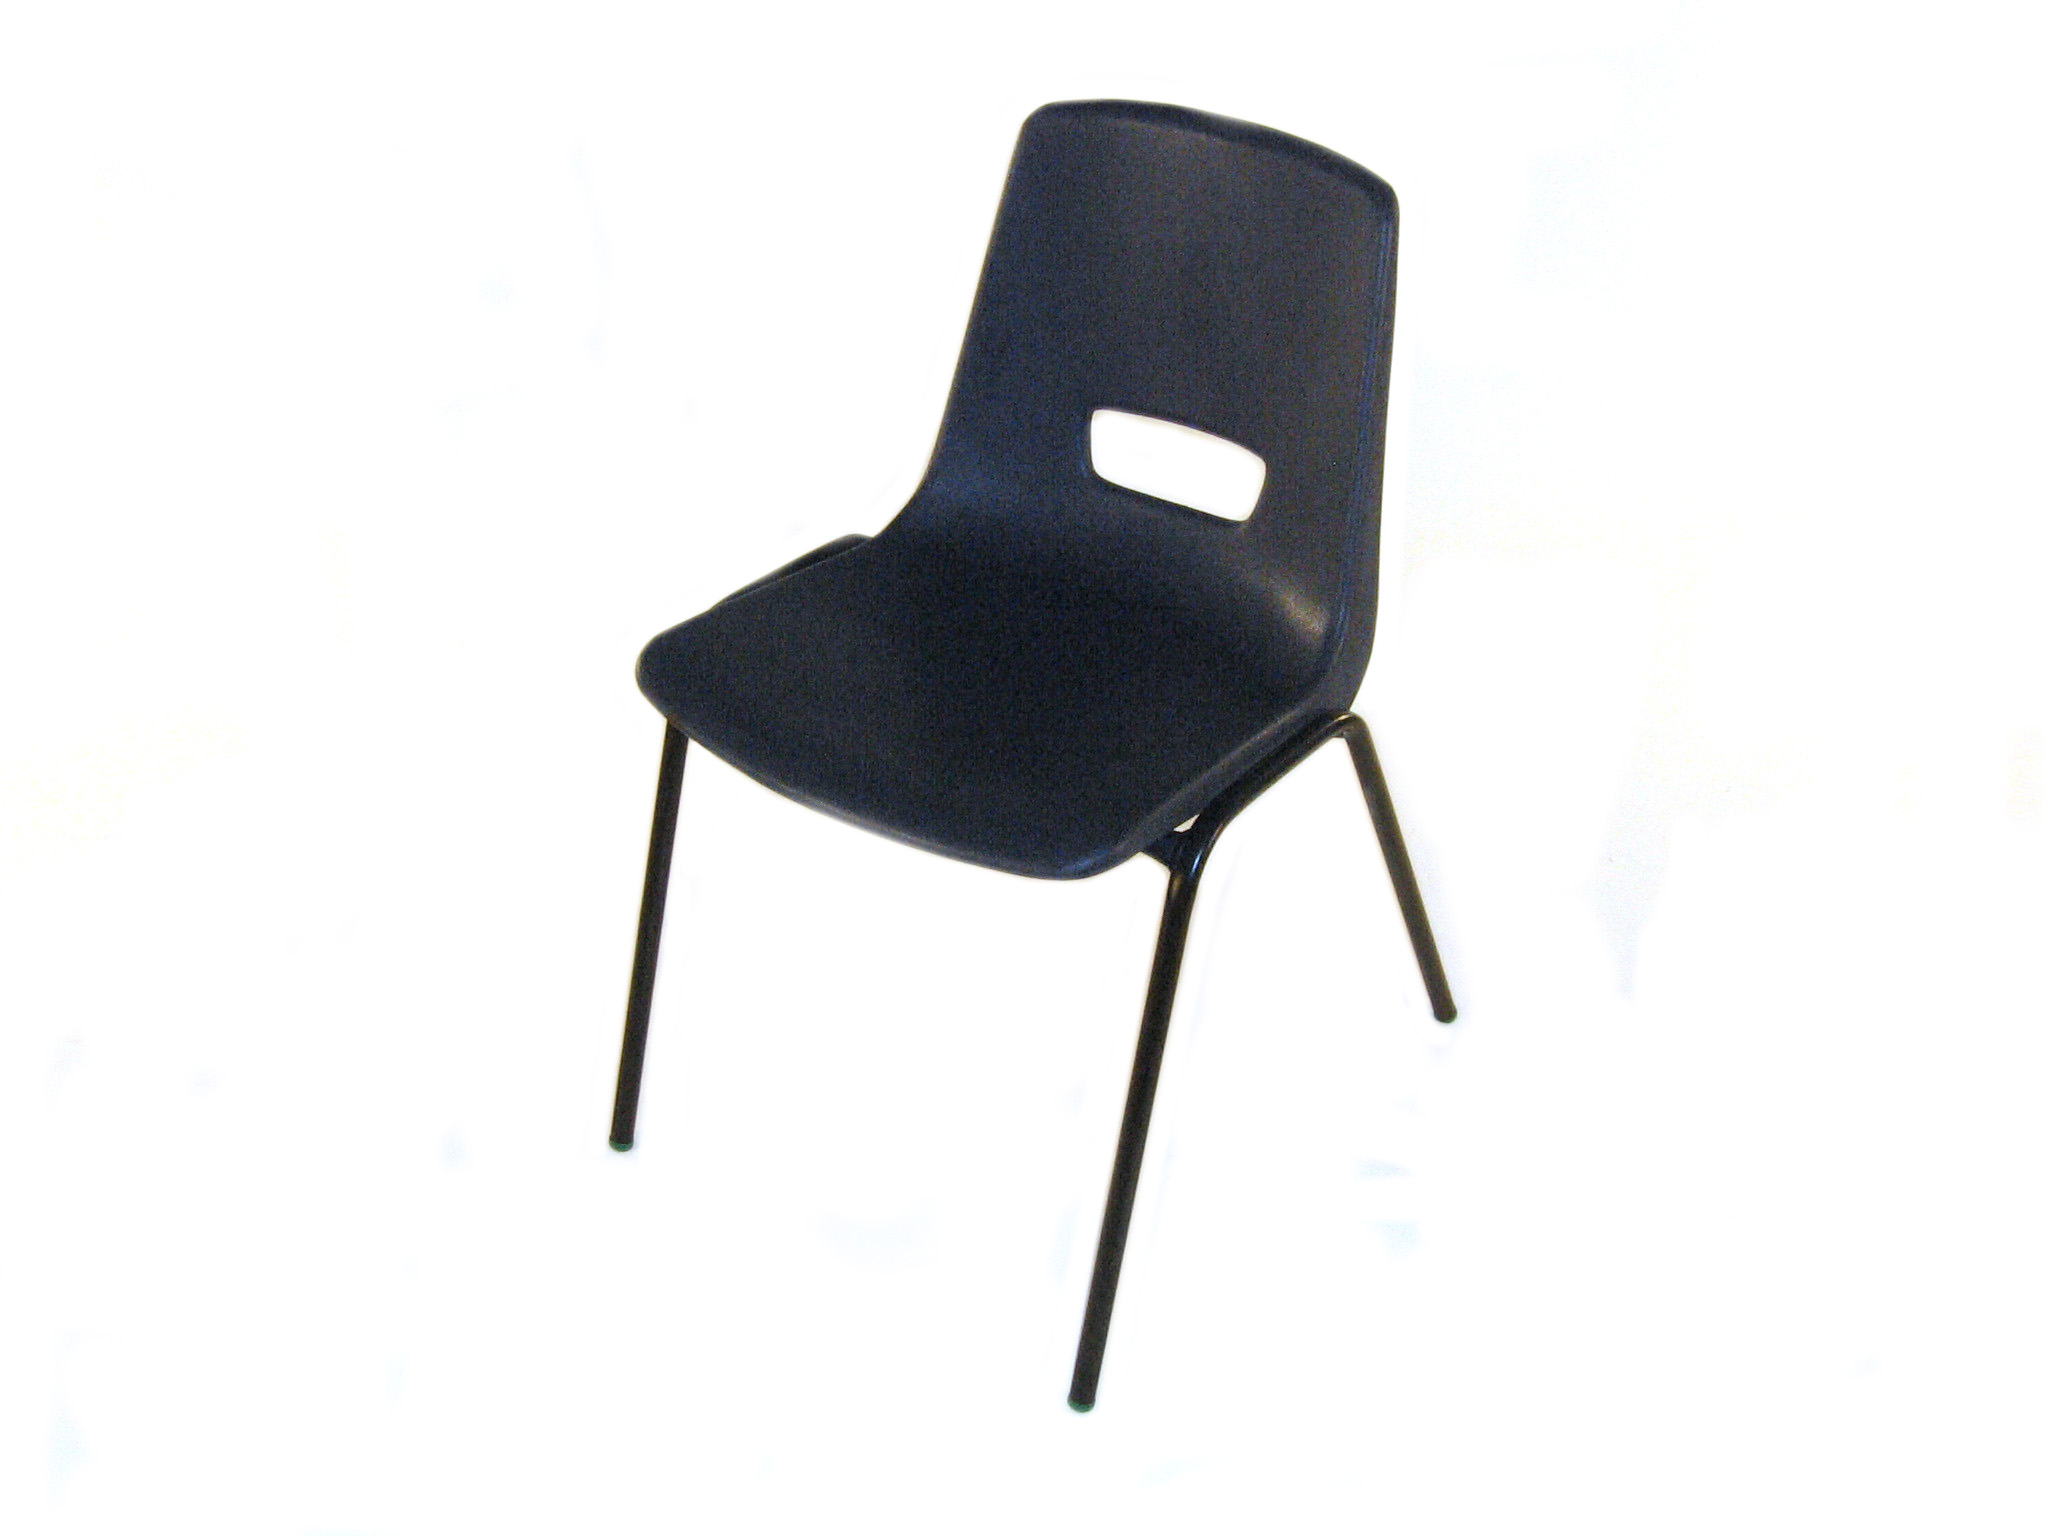 stacking chair seven ruud kokke pamono for per at chairs jan set sale by netherlands price rare of